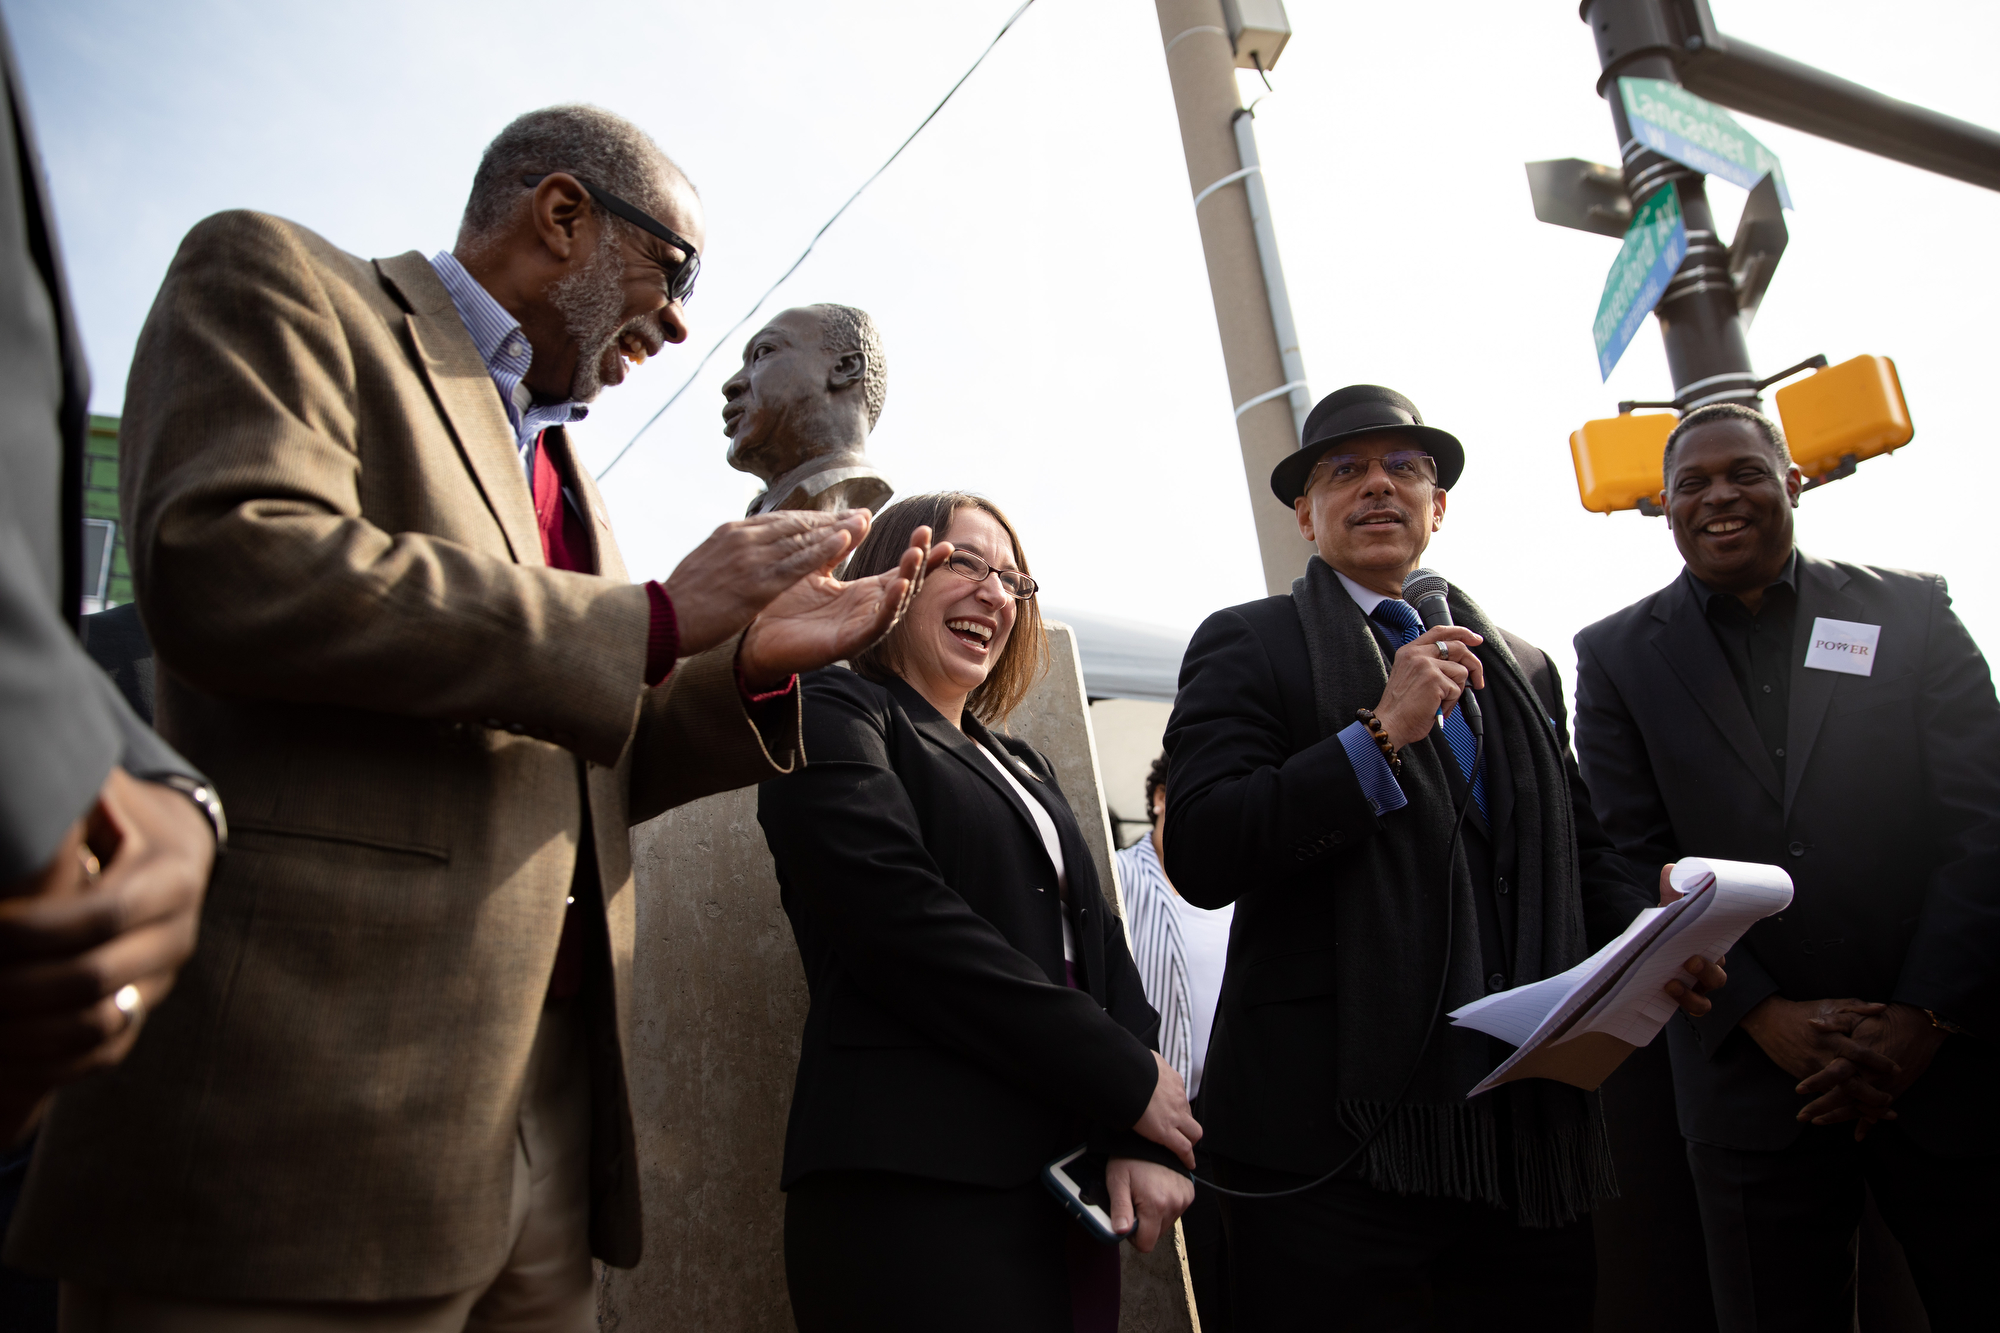 April 2, 2019: As a tribute to the legacy of the Rev. Dr. Martin Luther King Jr. and his fight for poor and working people, Senator Art Haywood joined members of the Pennsylvania Senate Democratic Caucus in the launch of a 30-day campaign to address poverty and economic insecurity in the commonwealth.